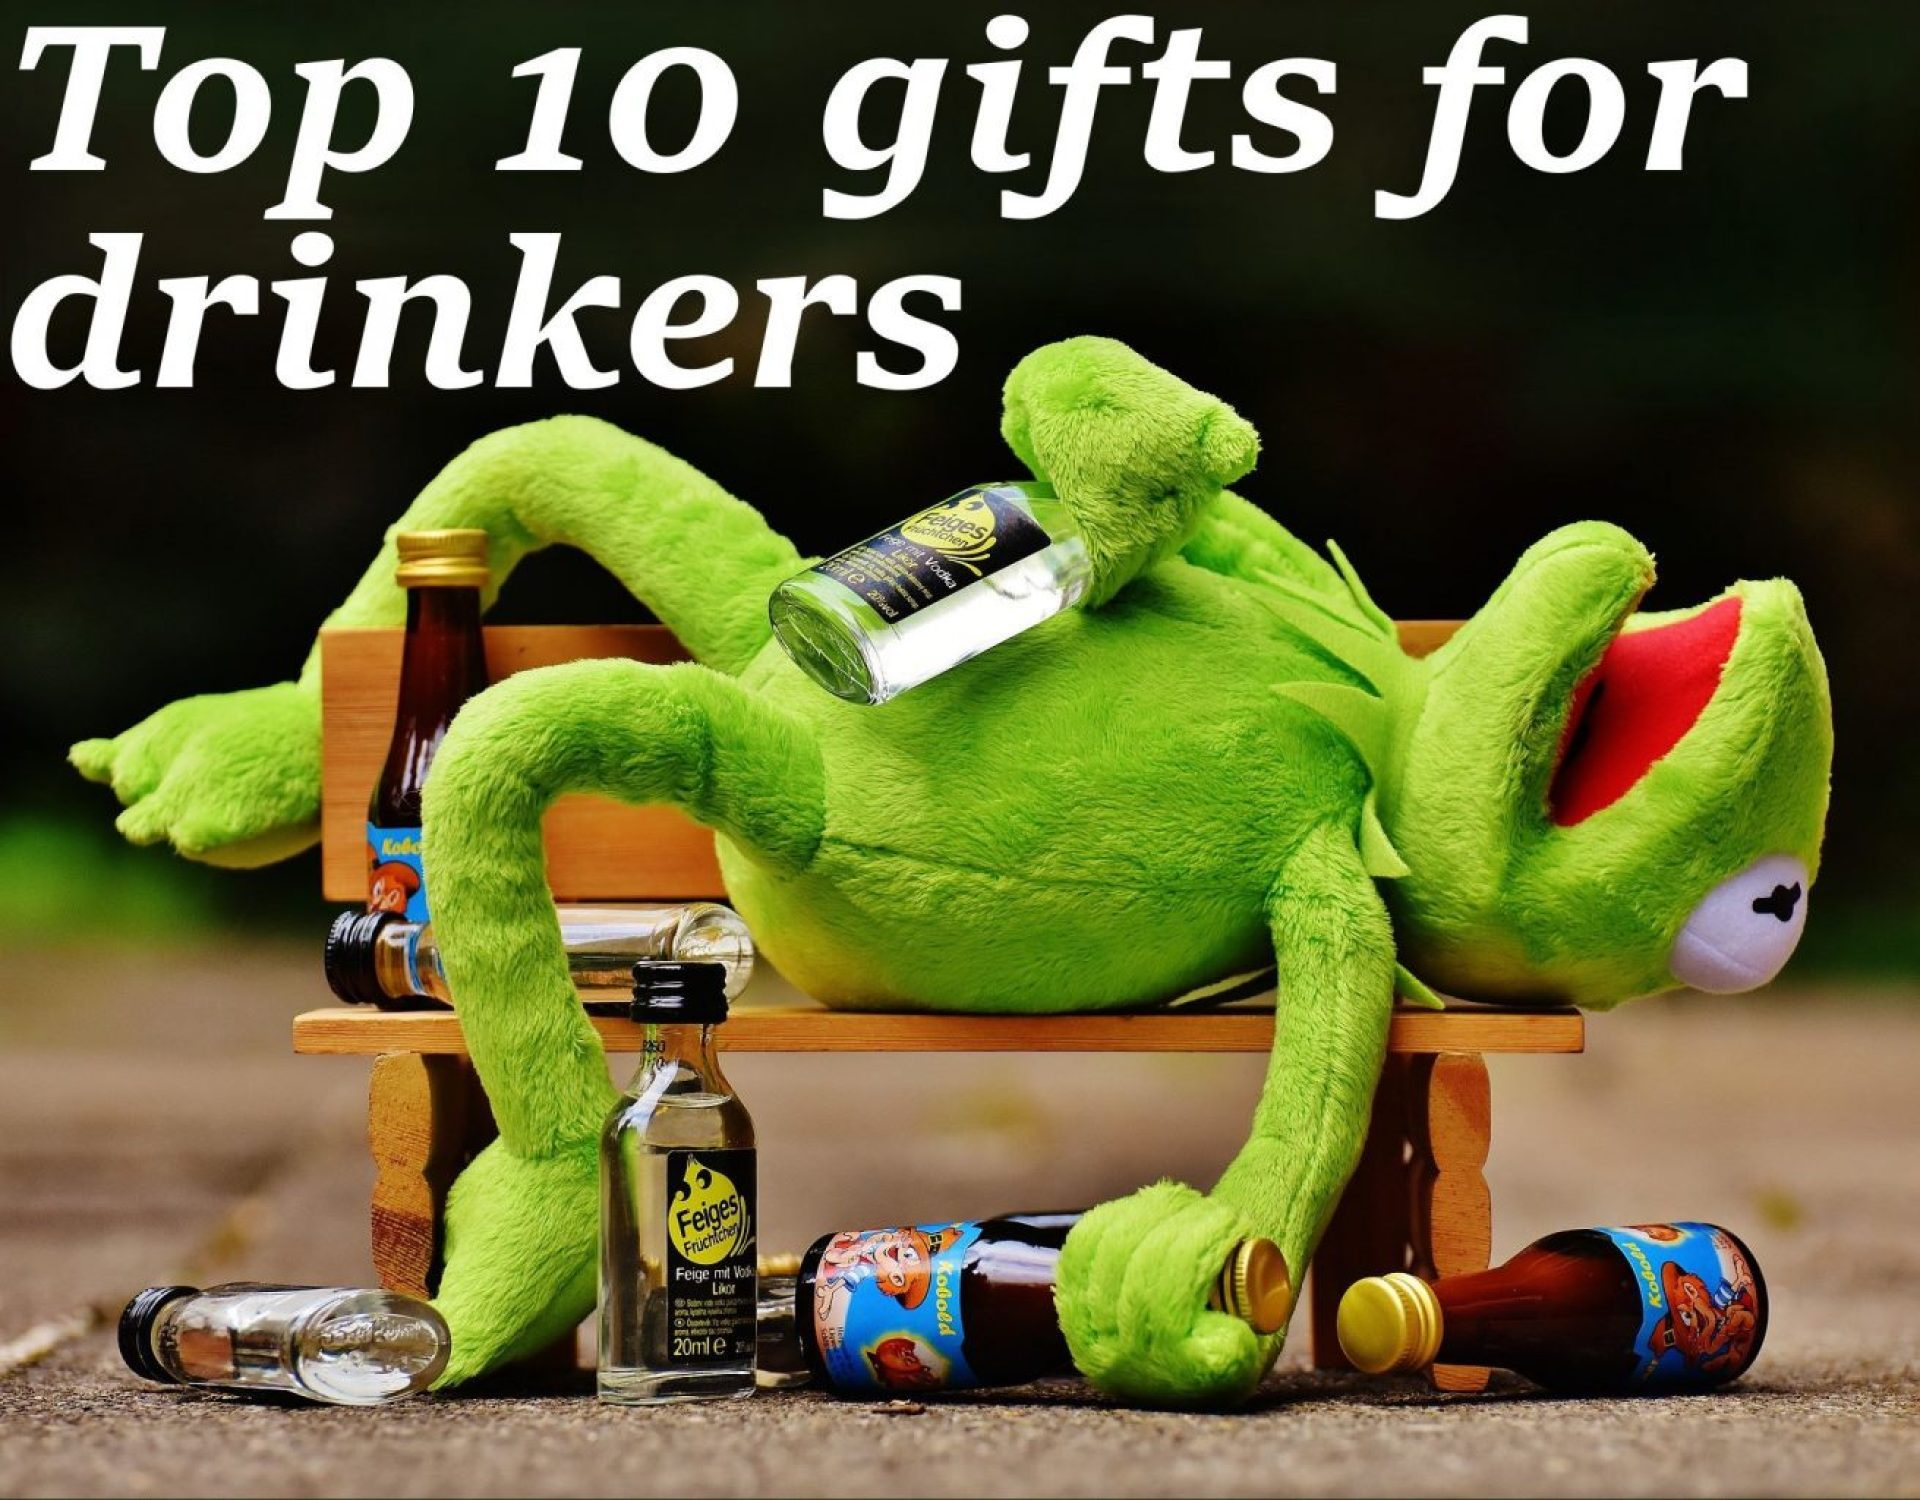 Gifts For Drinkers